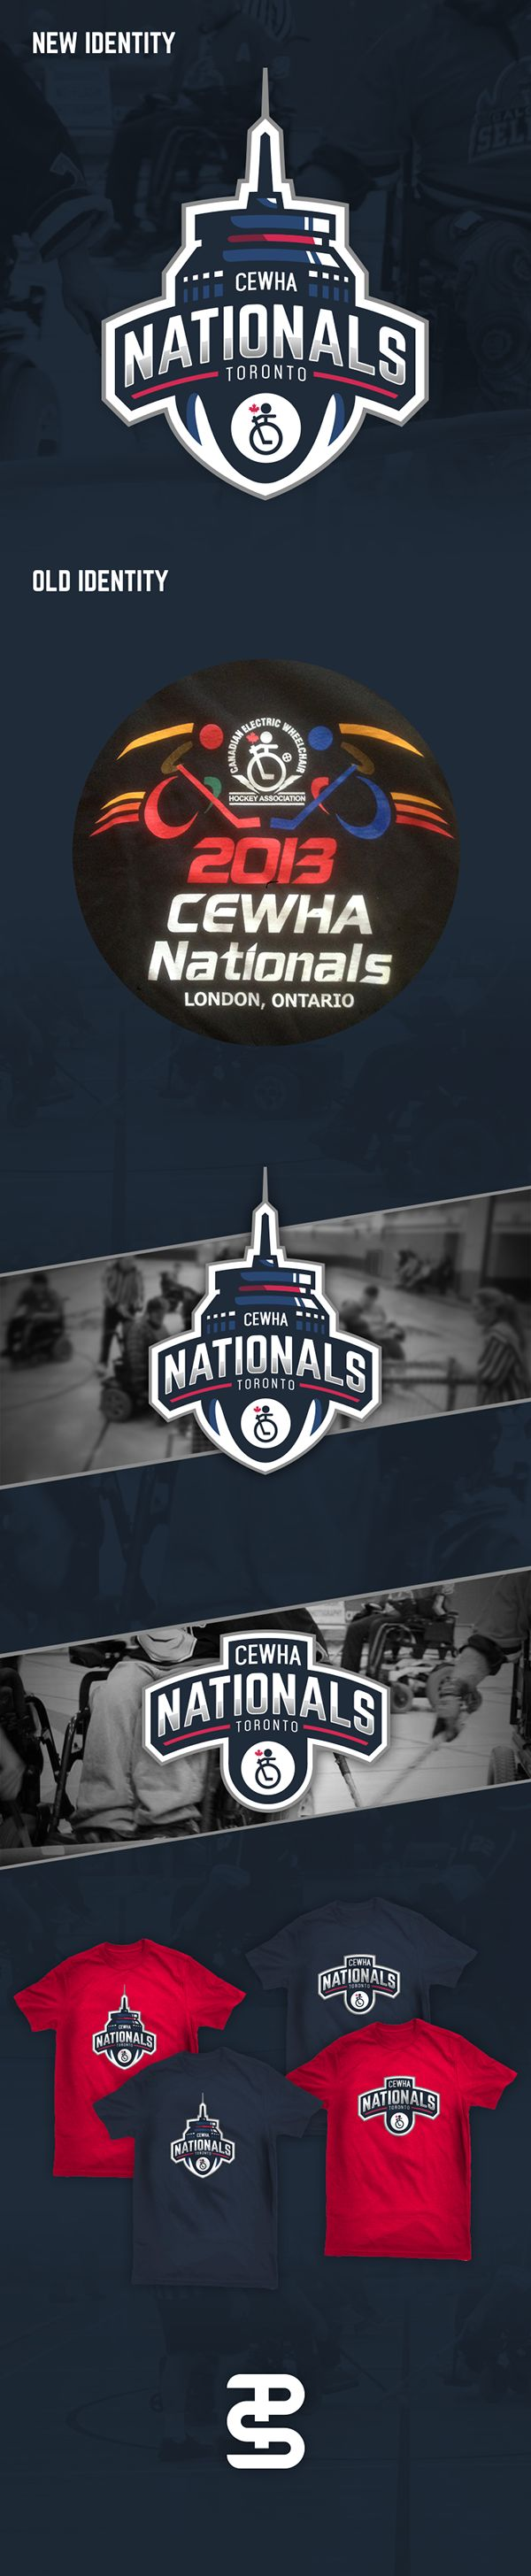 CEWHA 2014 Nationals Identity on Behance